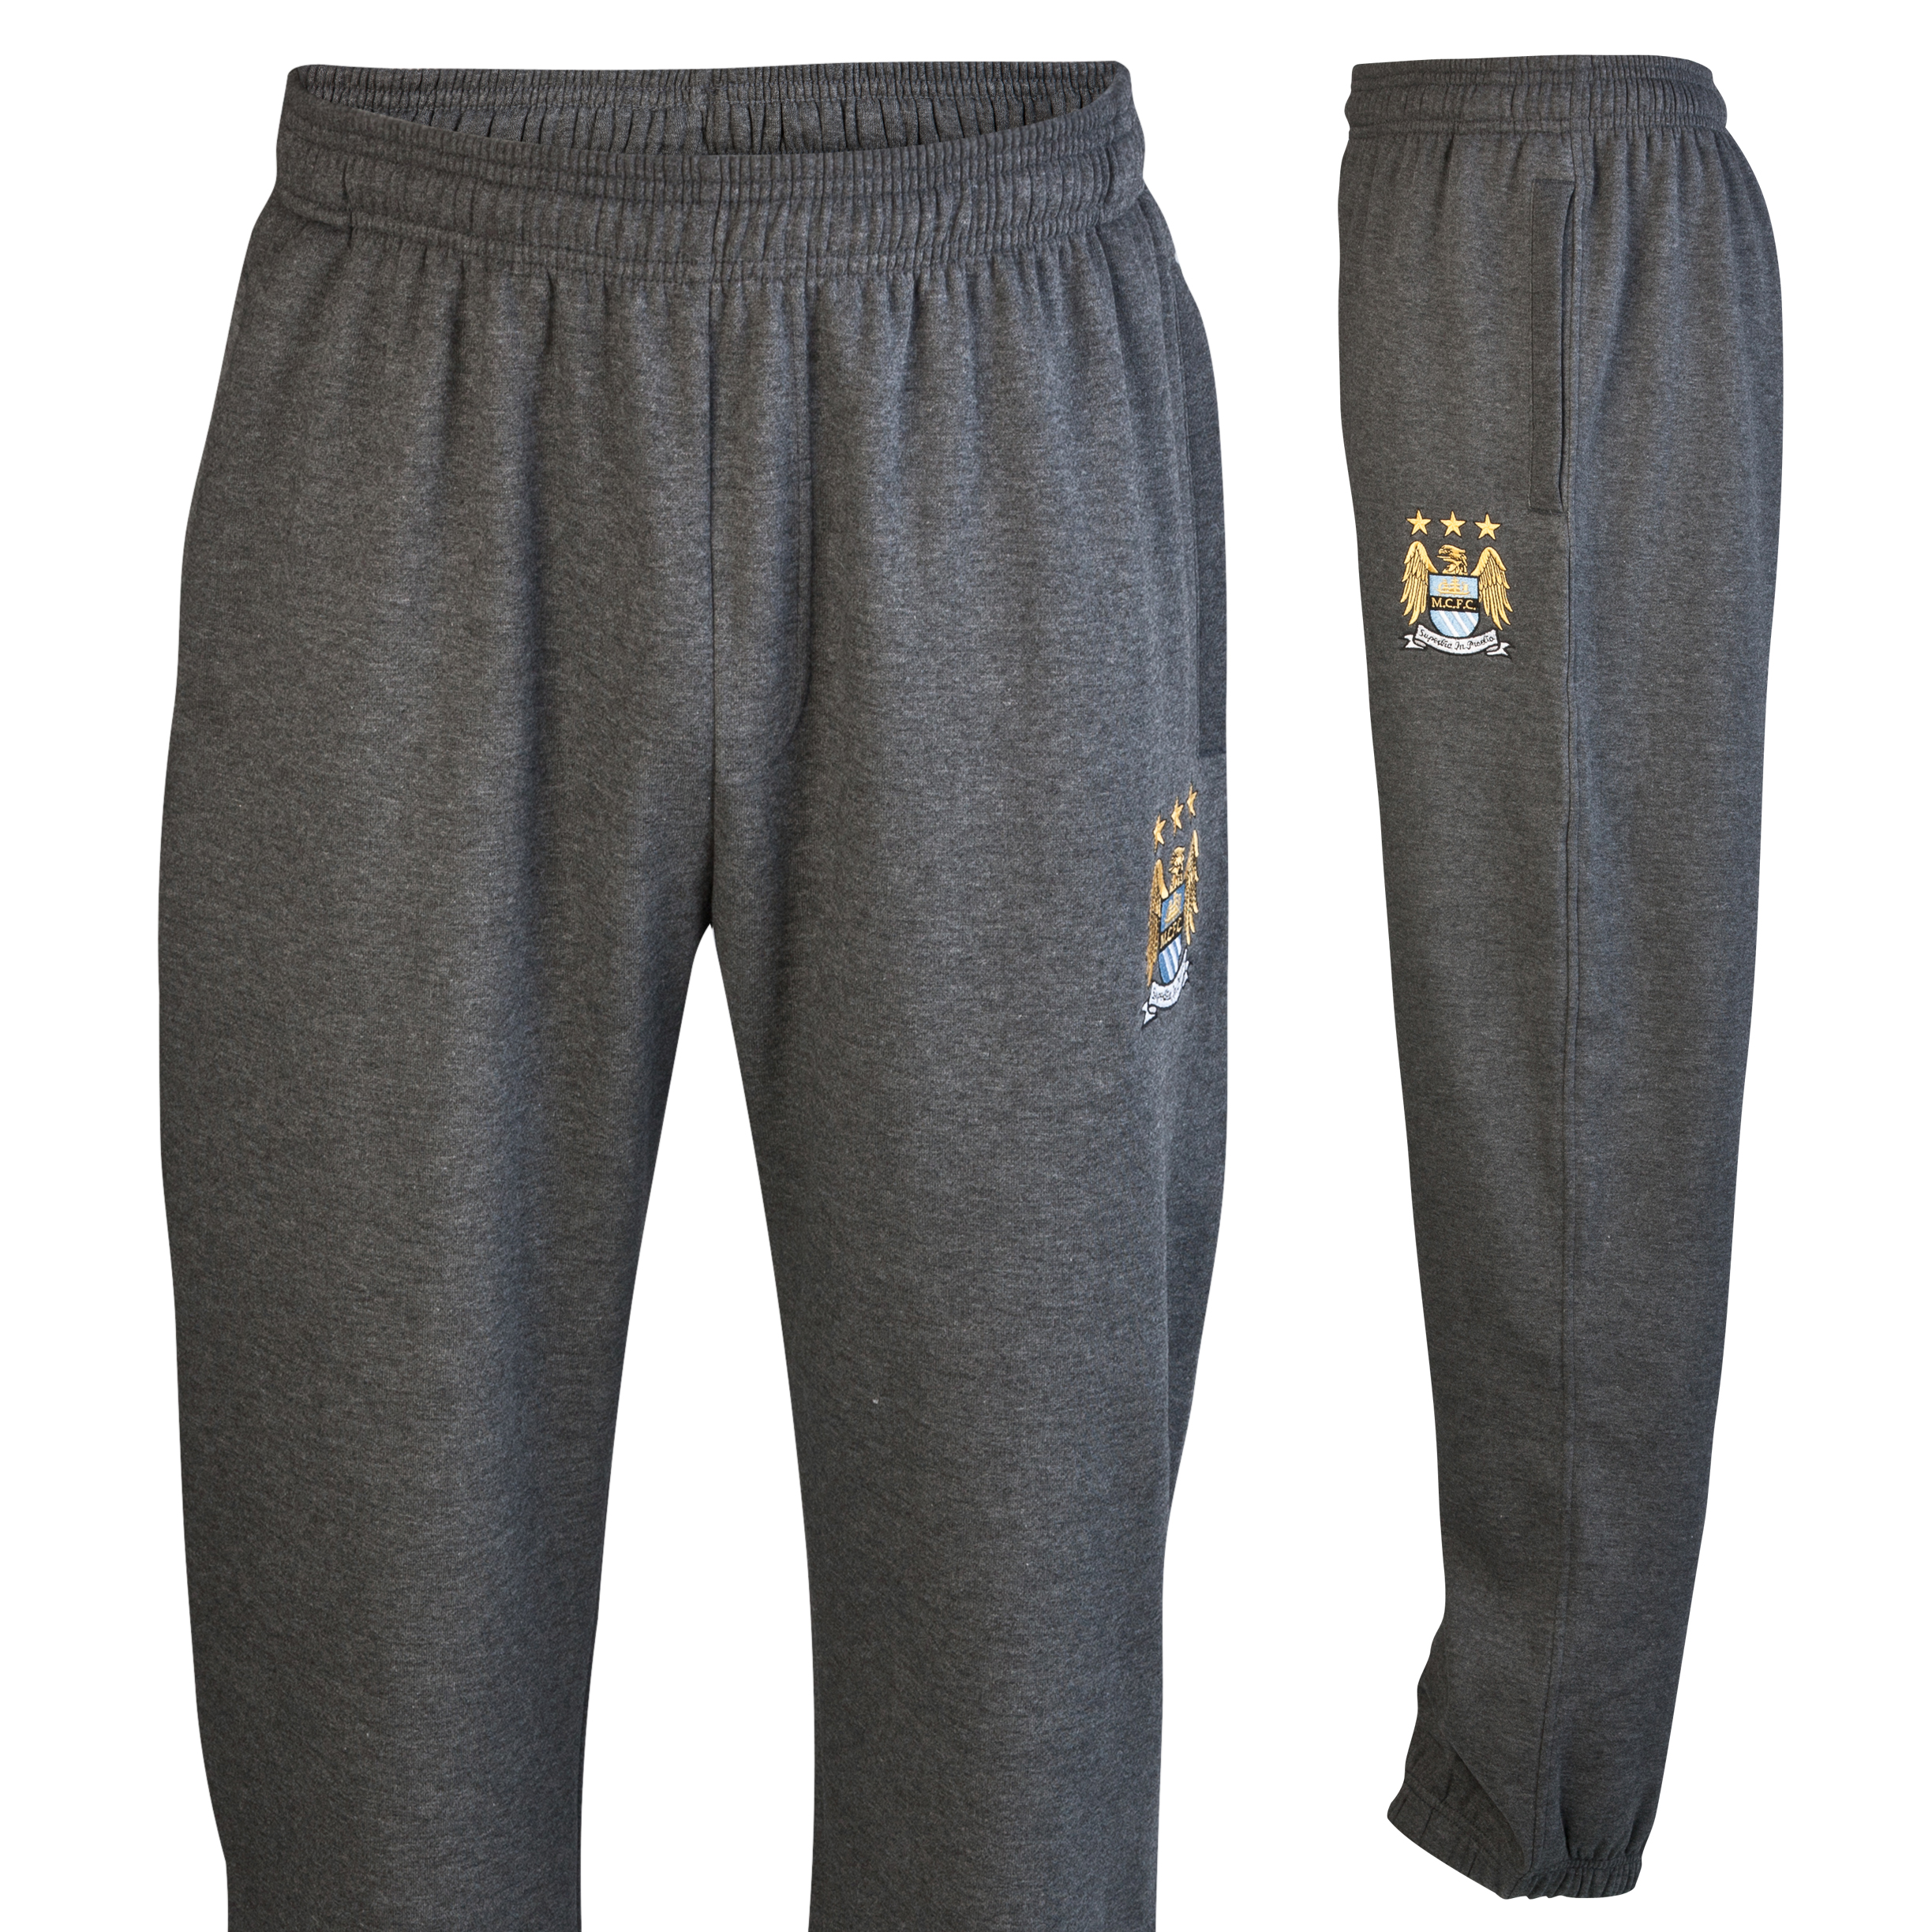 Manchester City Essential Jungle Jog Pants - Charcoal Marl